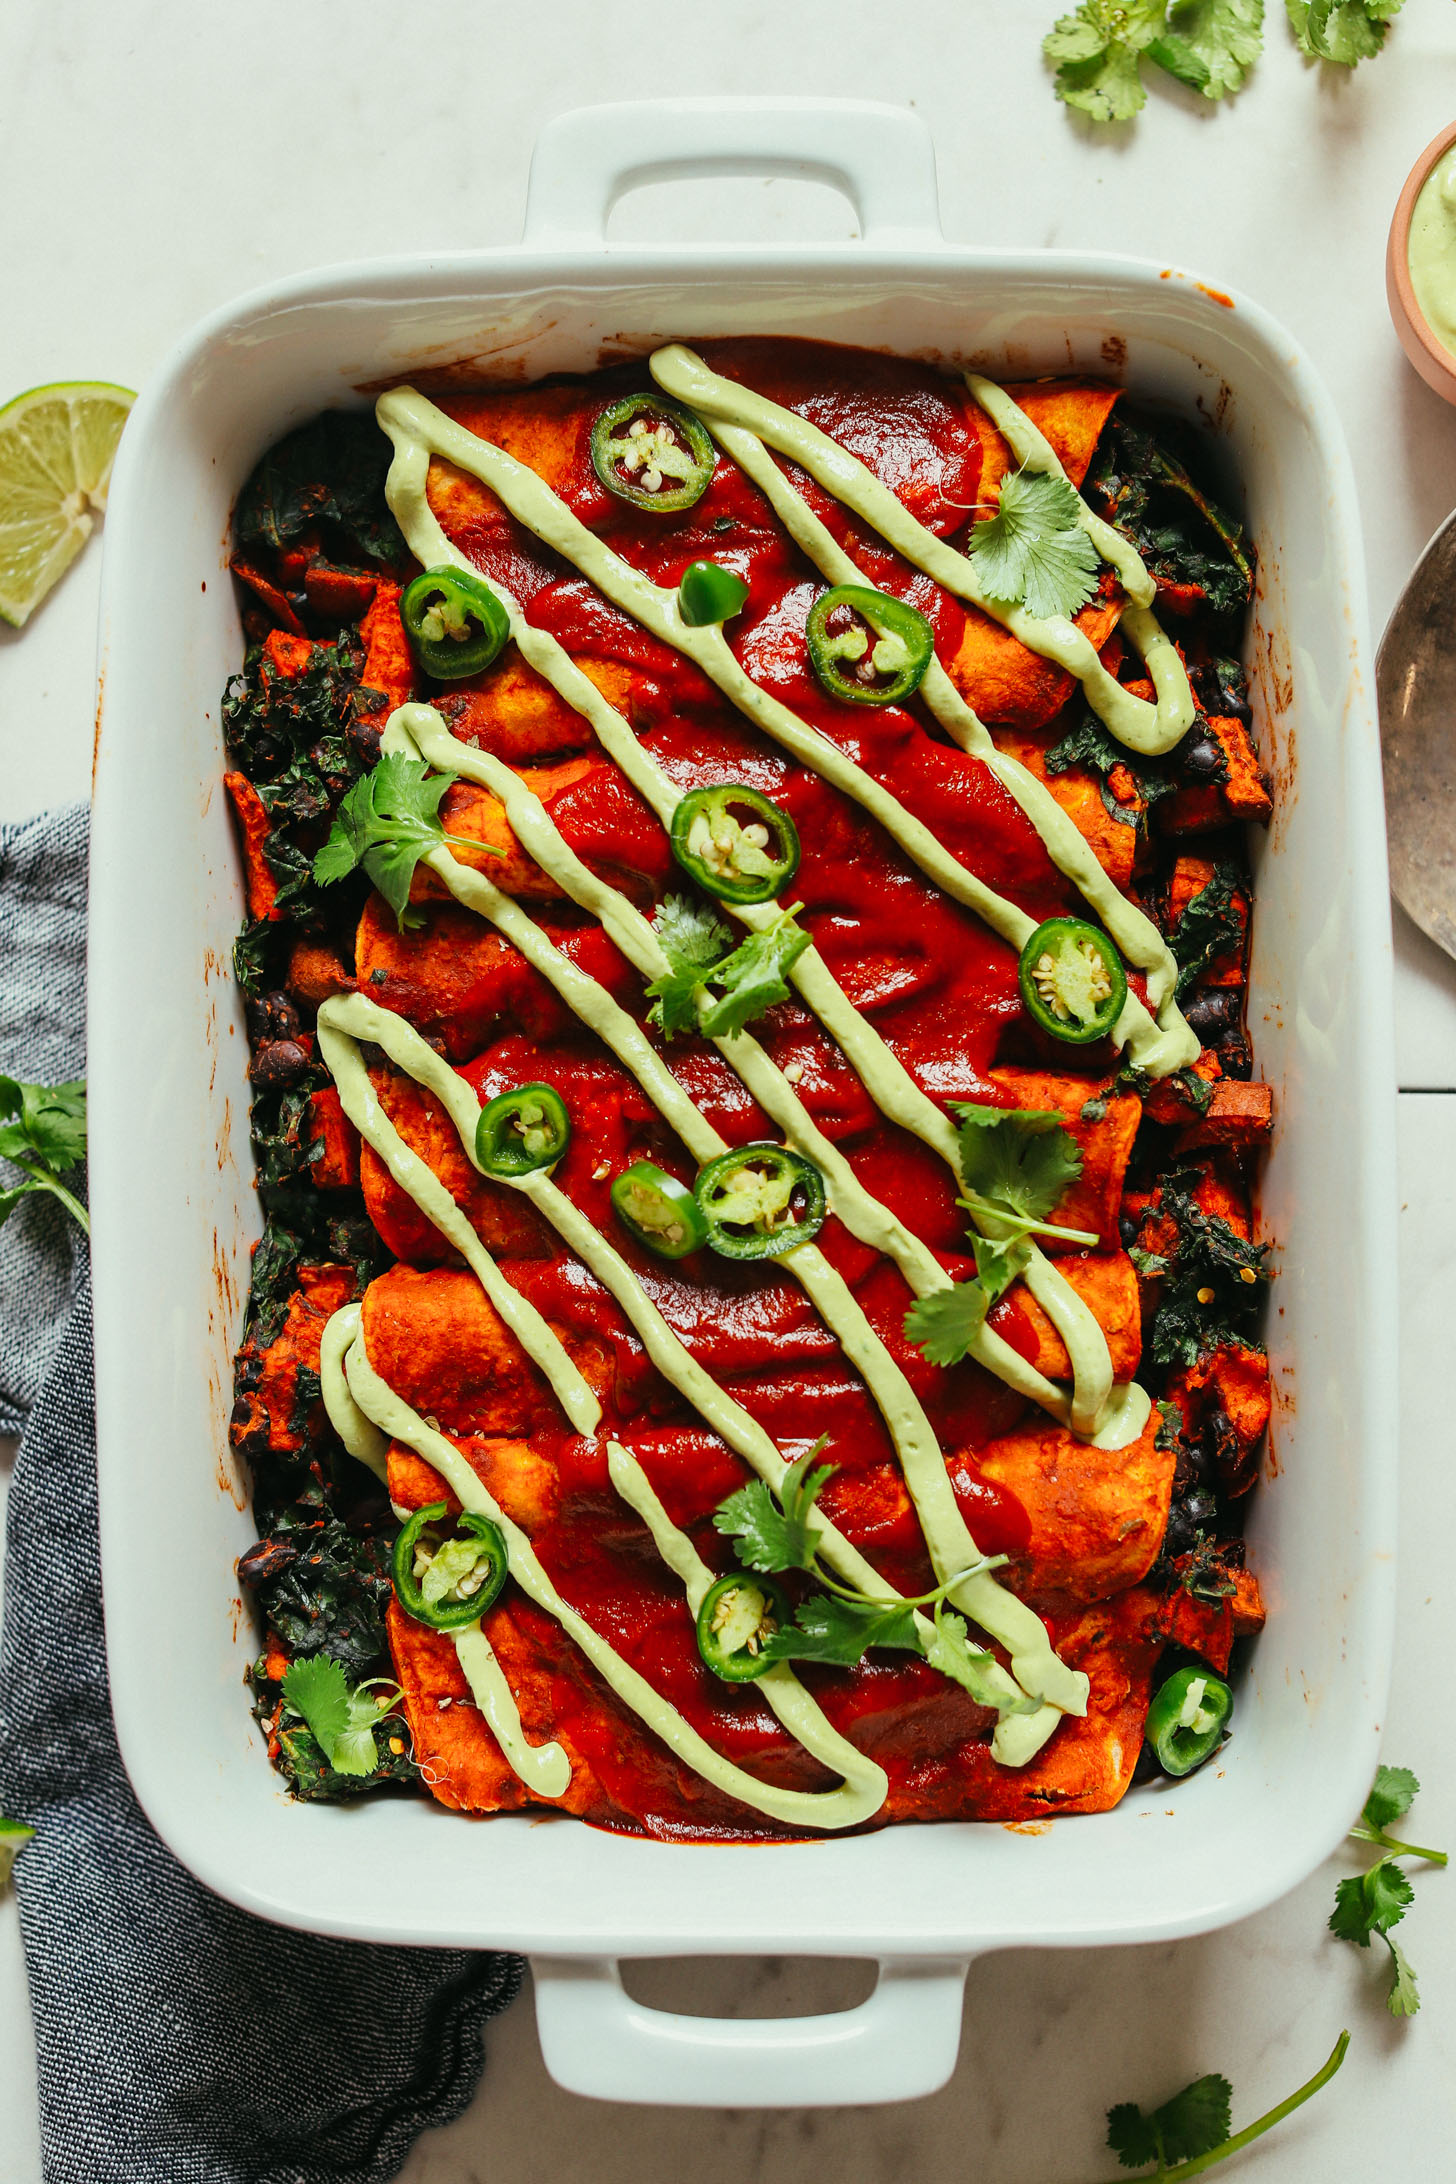 Baking Pan of gluten-free vegan Sweet Potato Black Bean Enchiladas for a satisfying plant-based meal